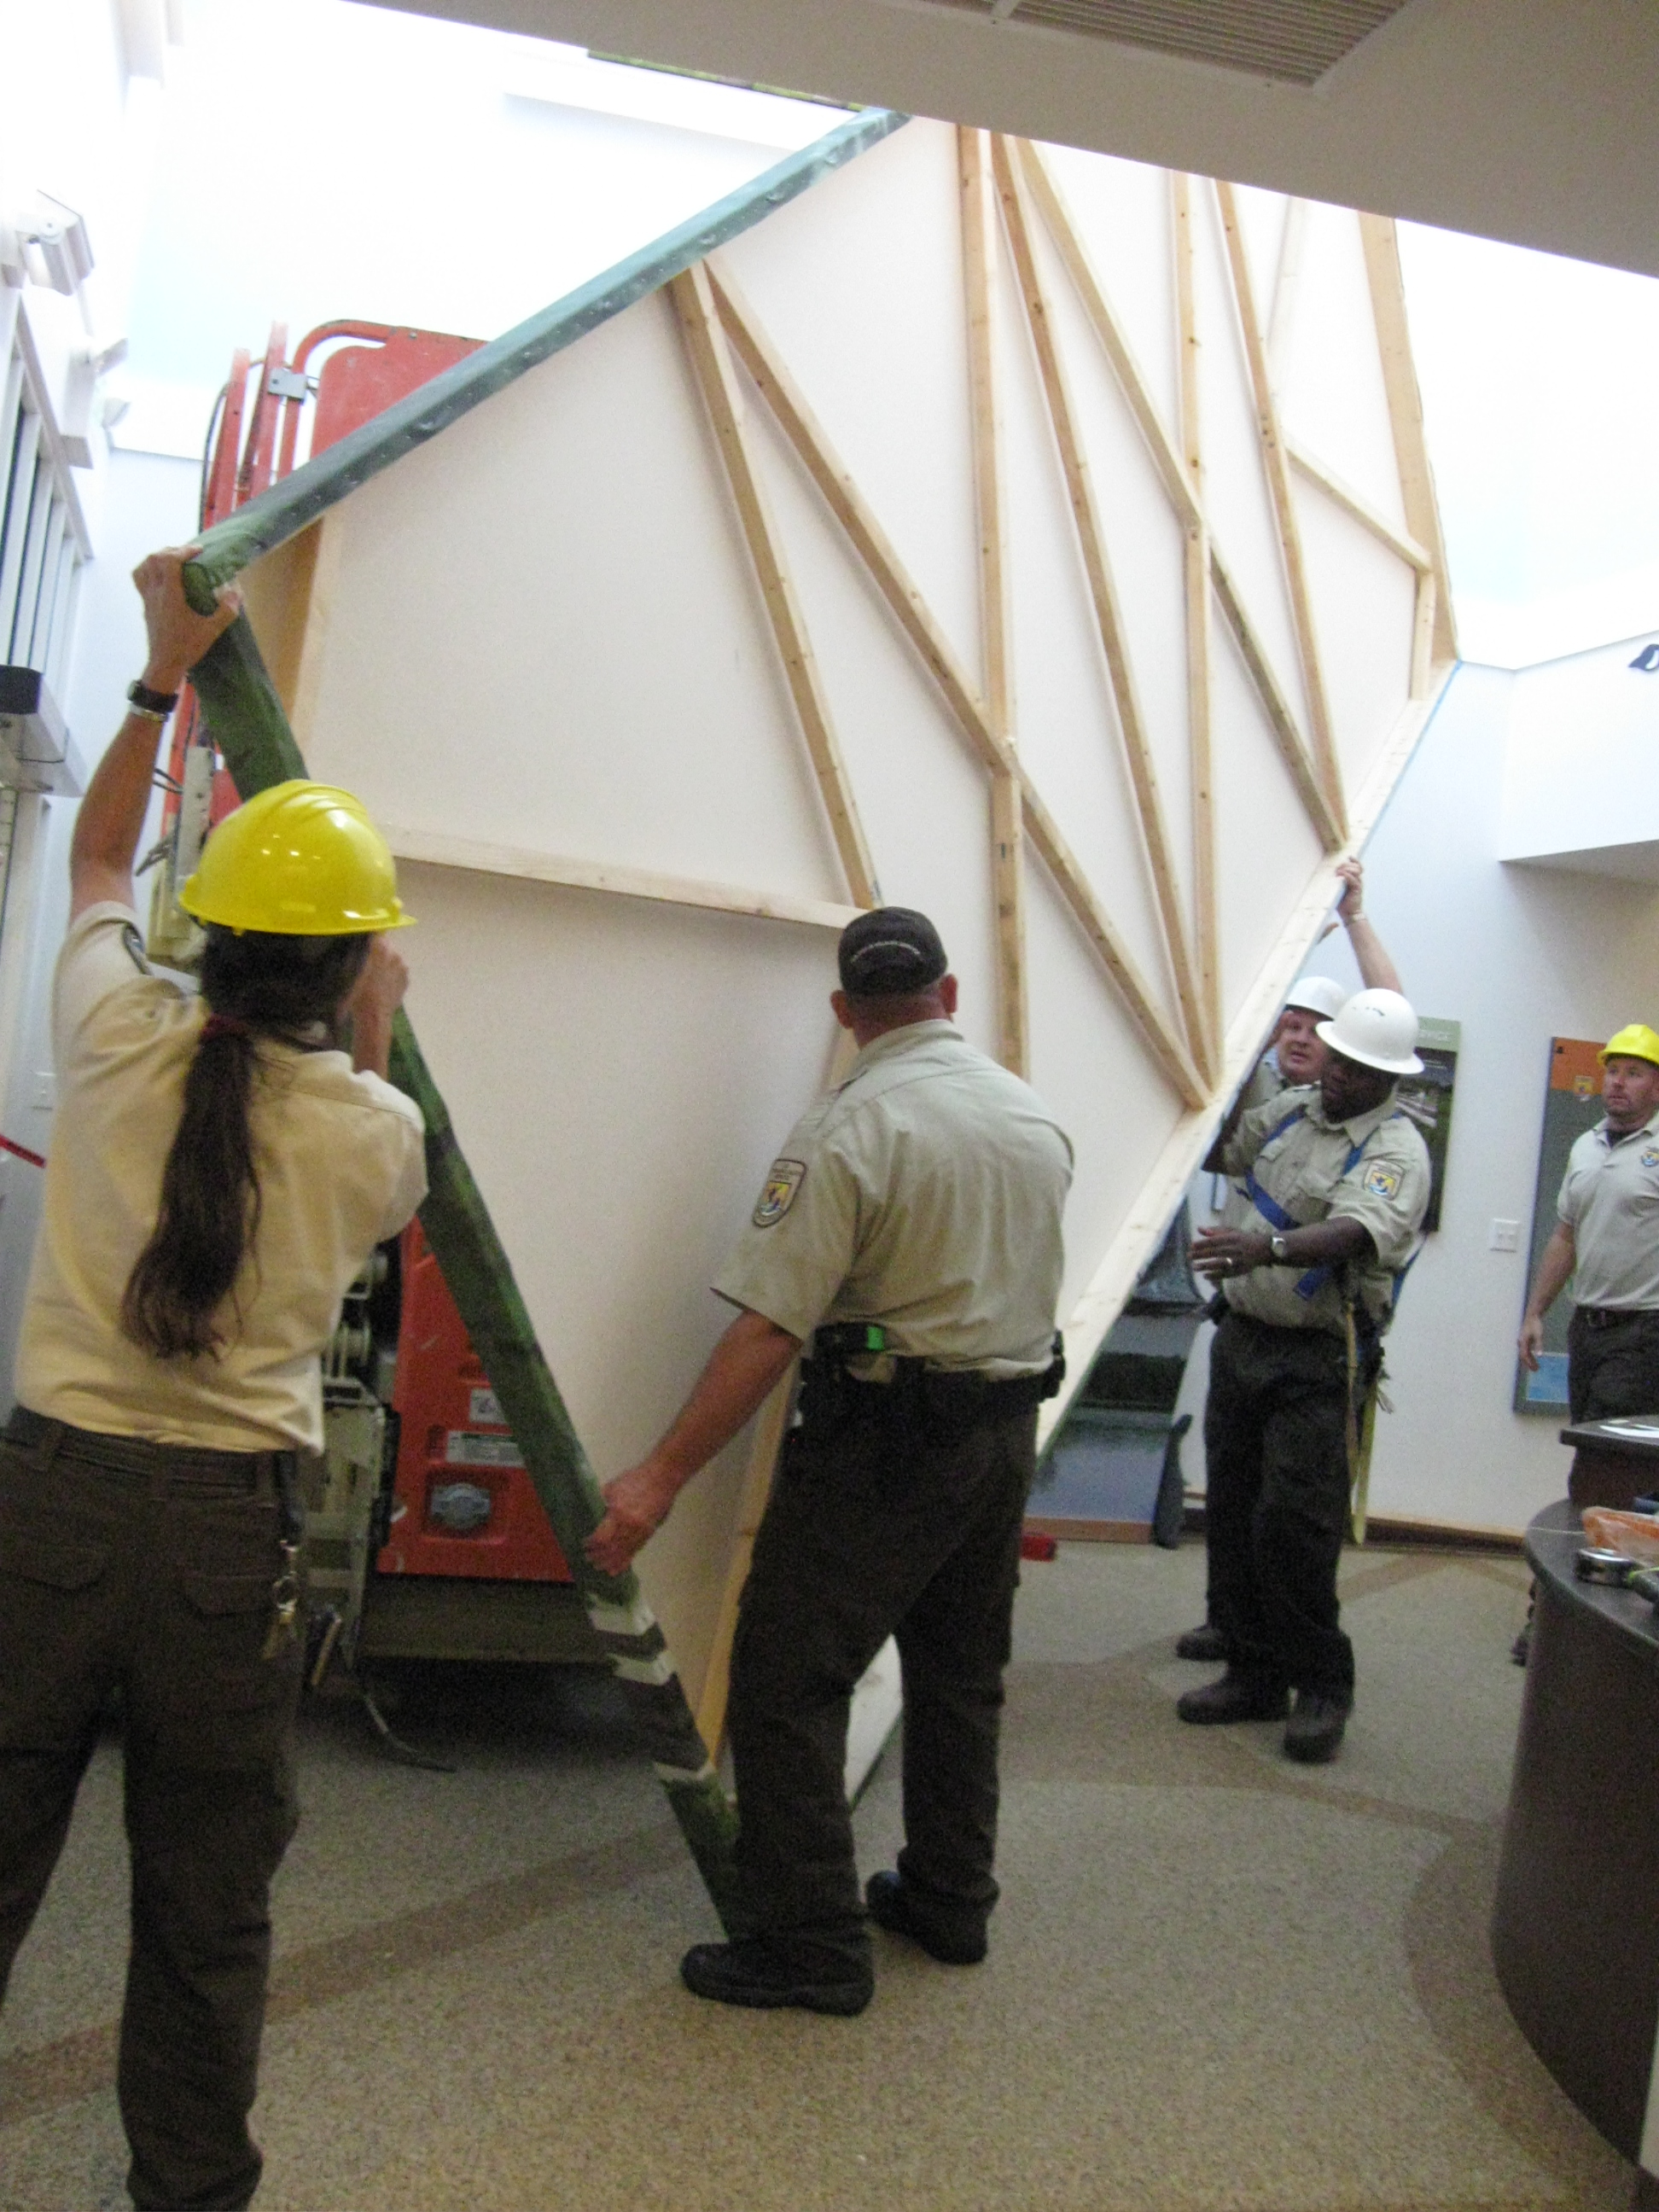 FWS staff begin to raise one of the four panels into position